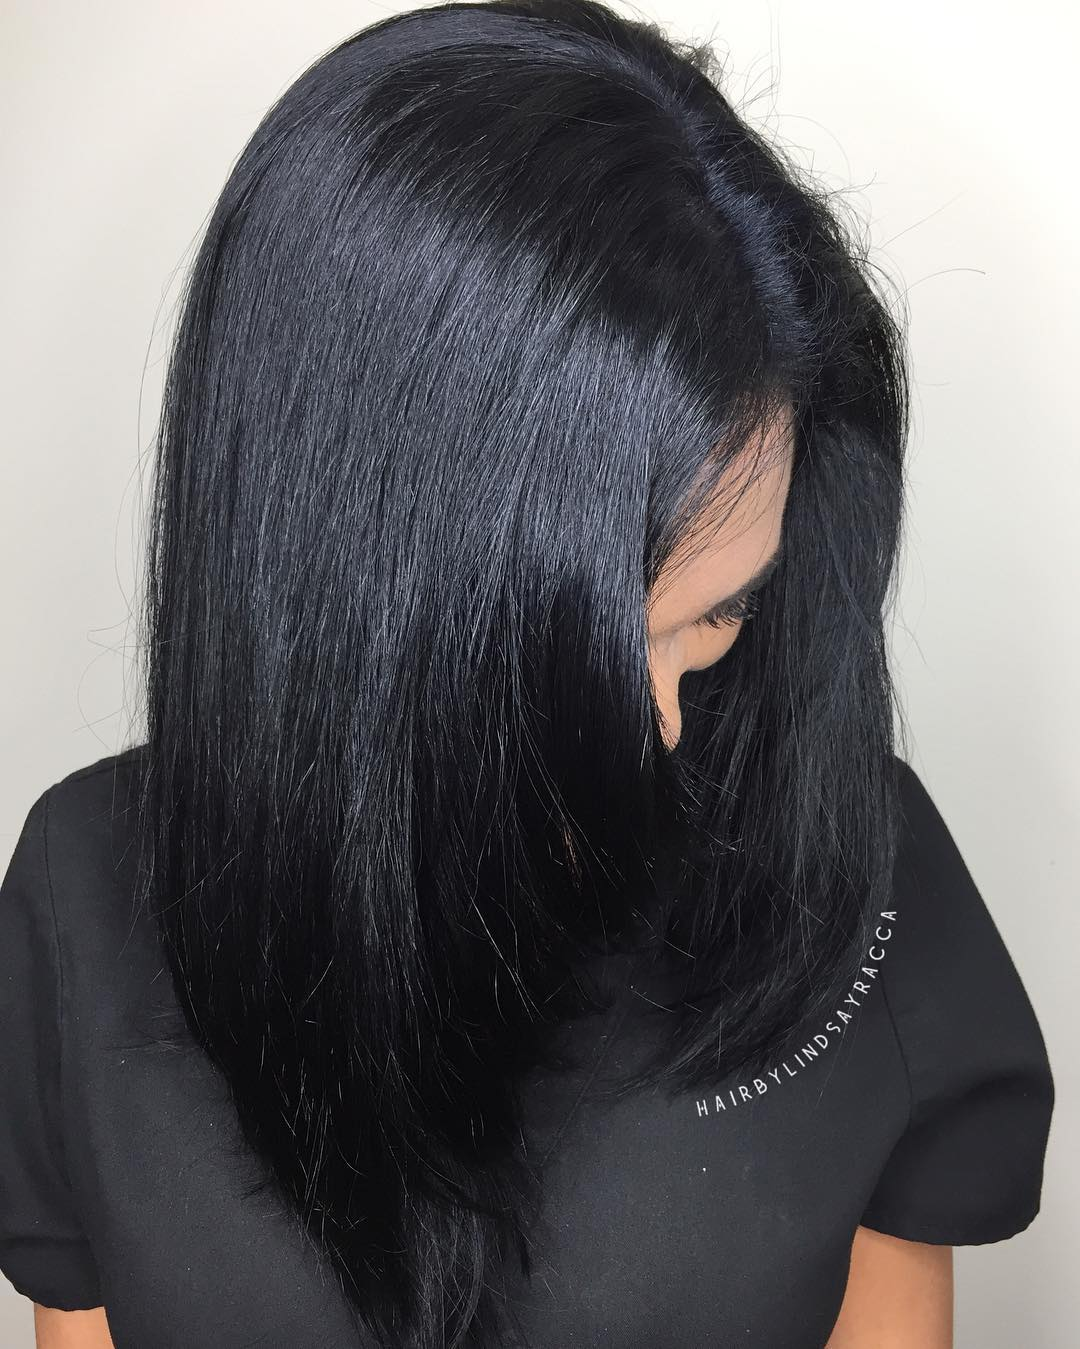 Buy Jet hair black with blue tint picture trends